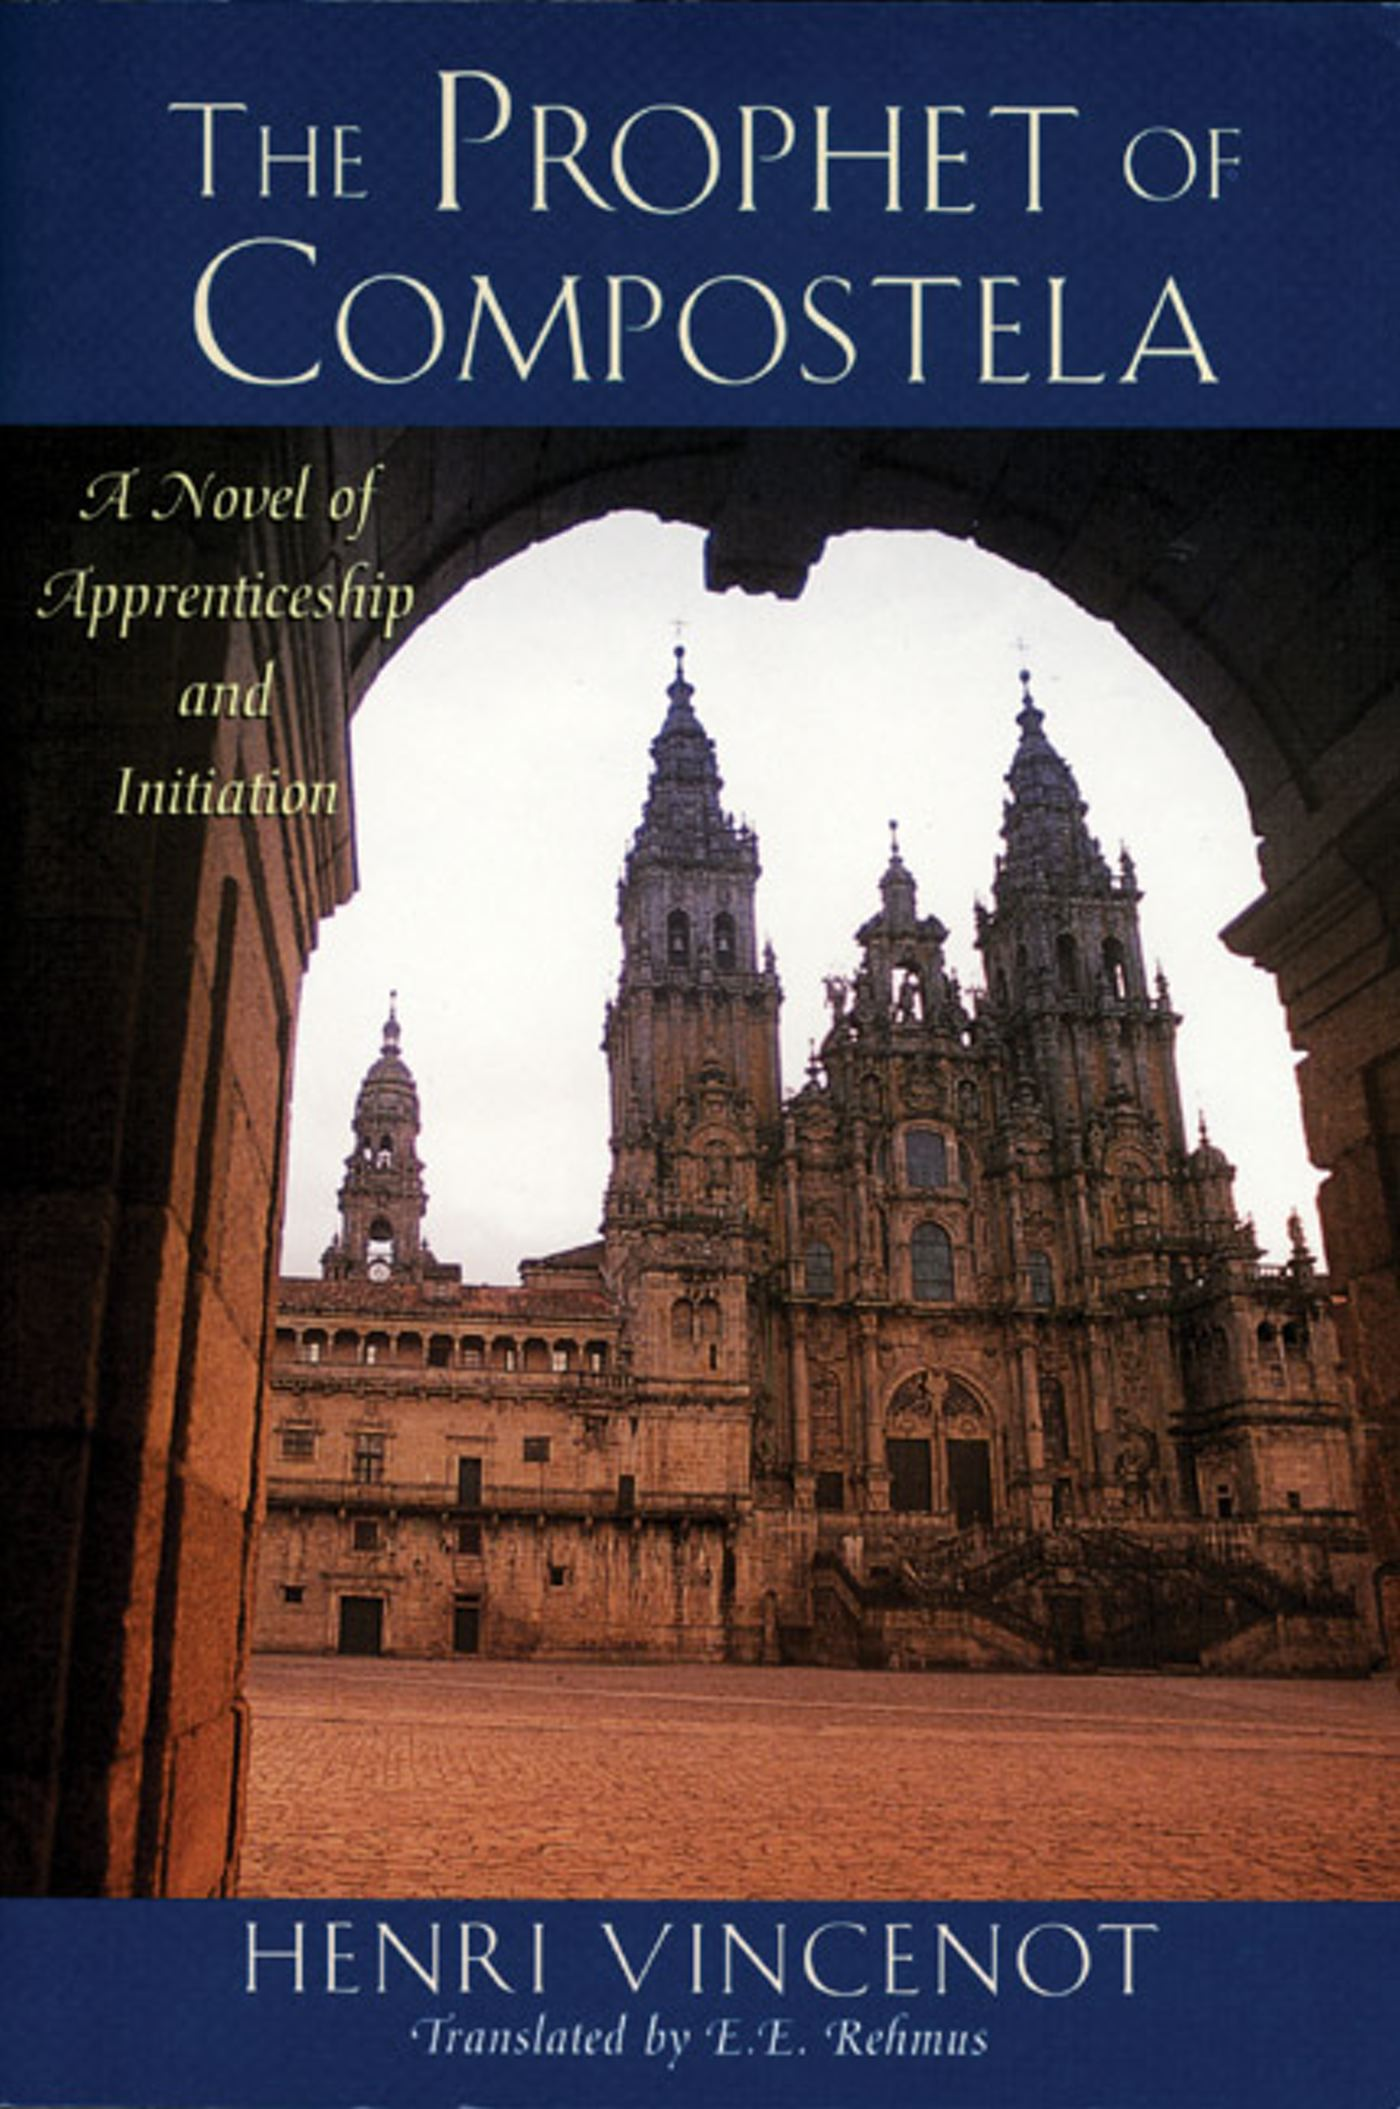 The prophet of compostela 9780892815241 hr